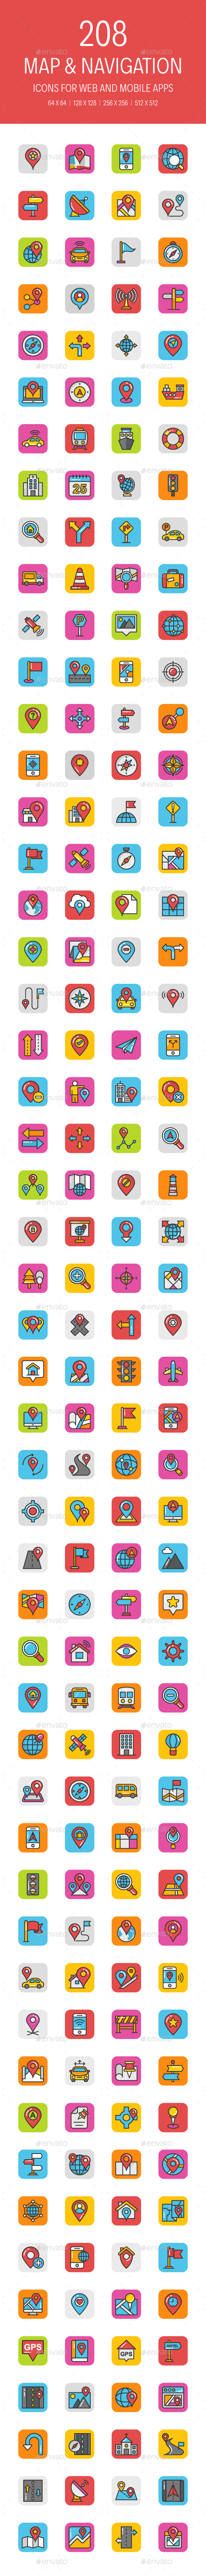 GraphicRiver 208 Map and Navigation Icons 21179697